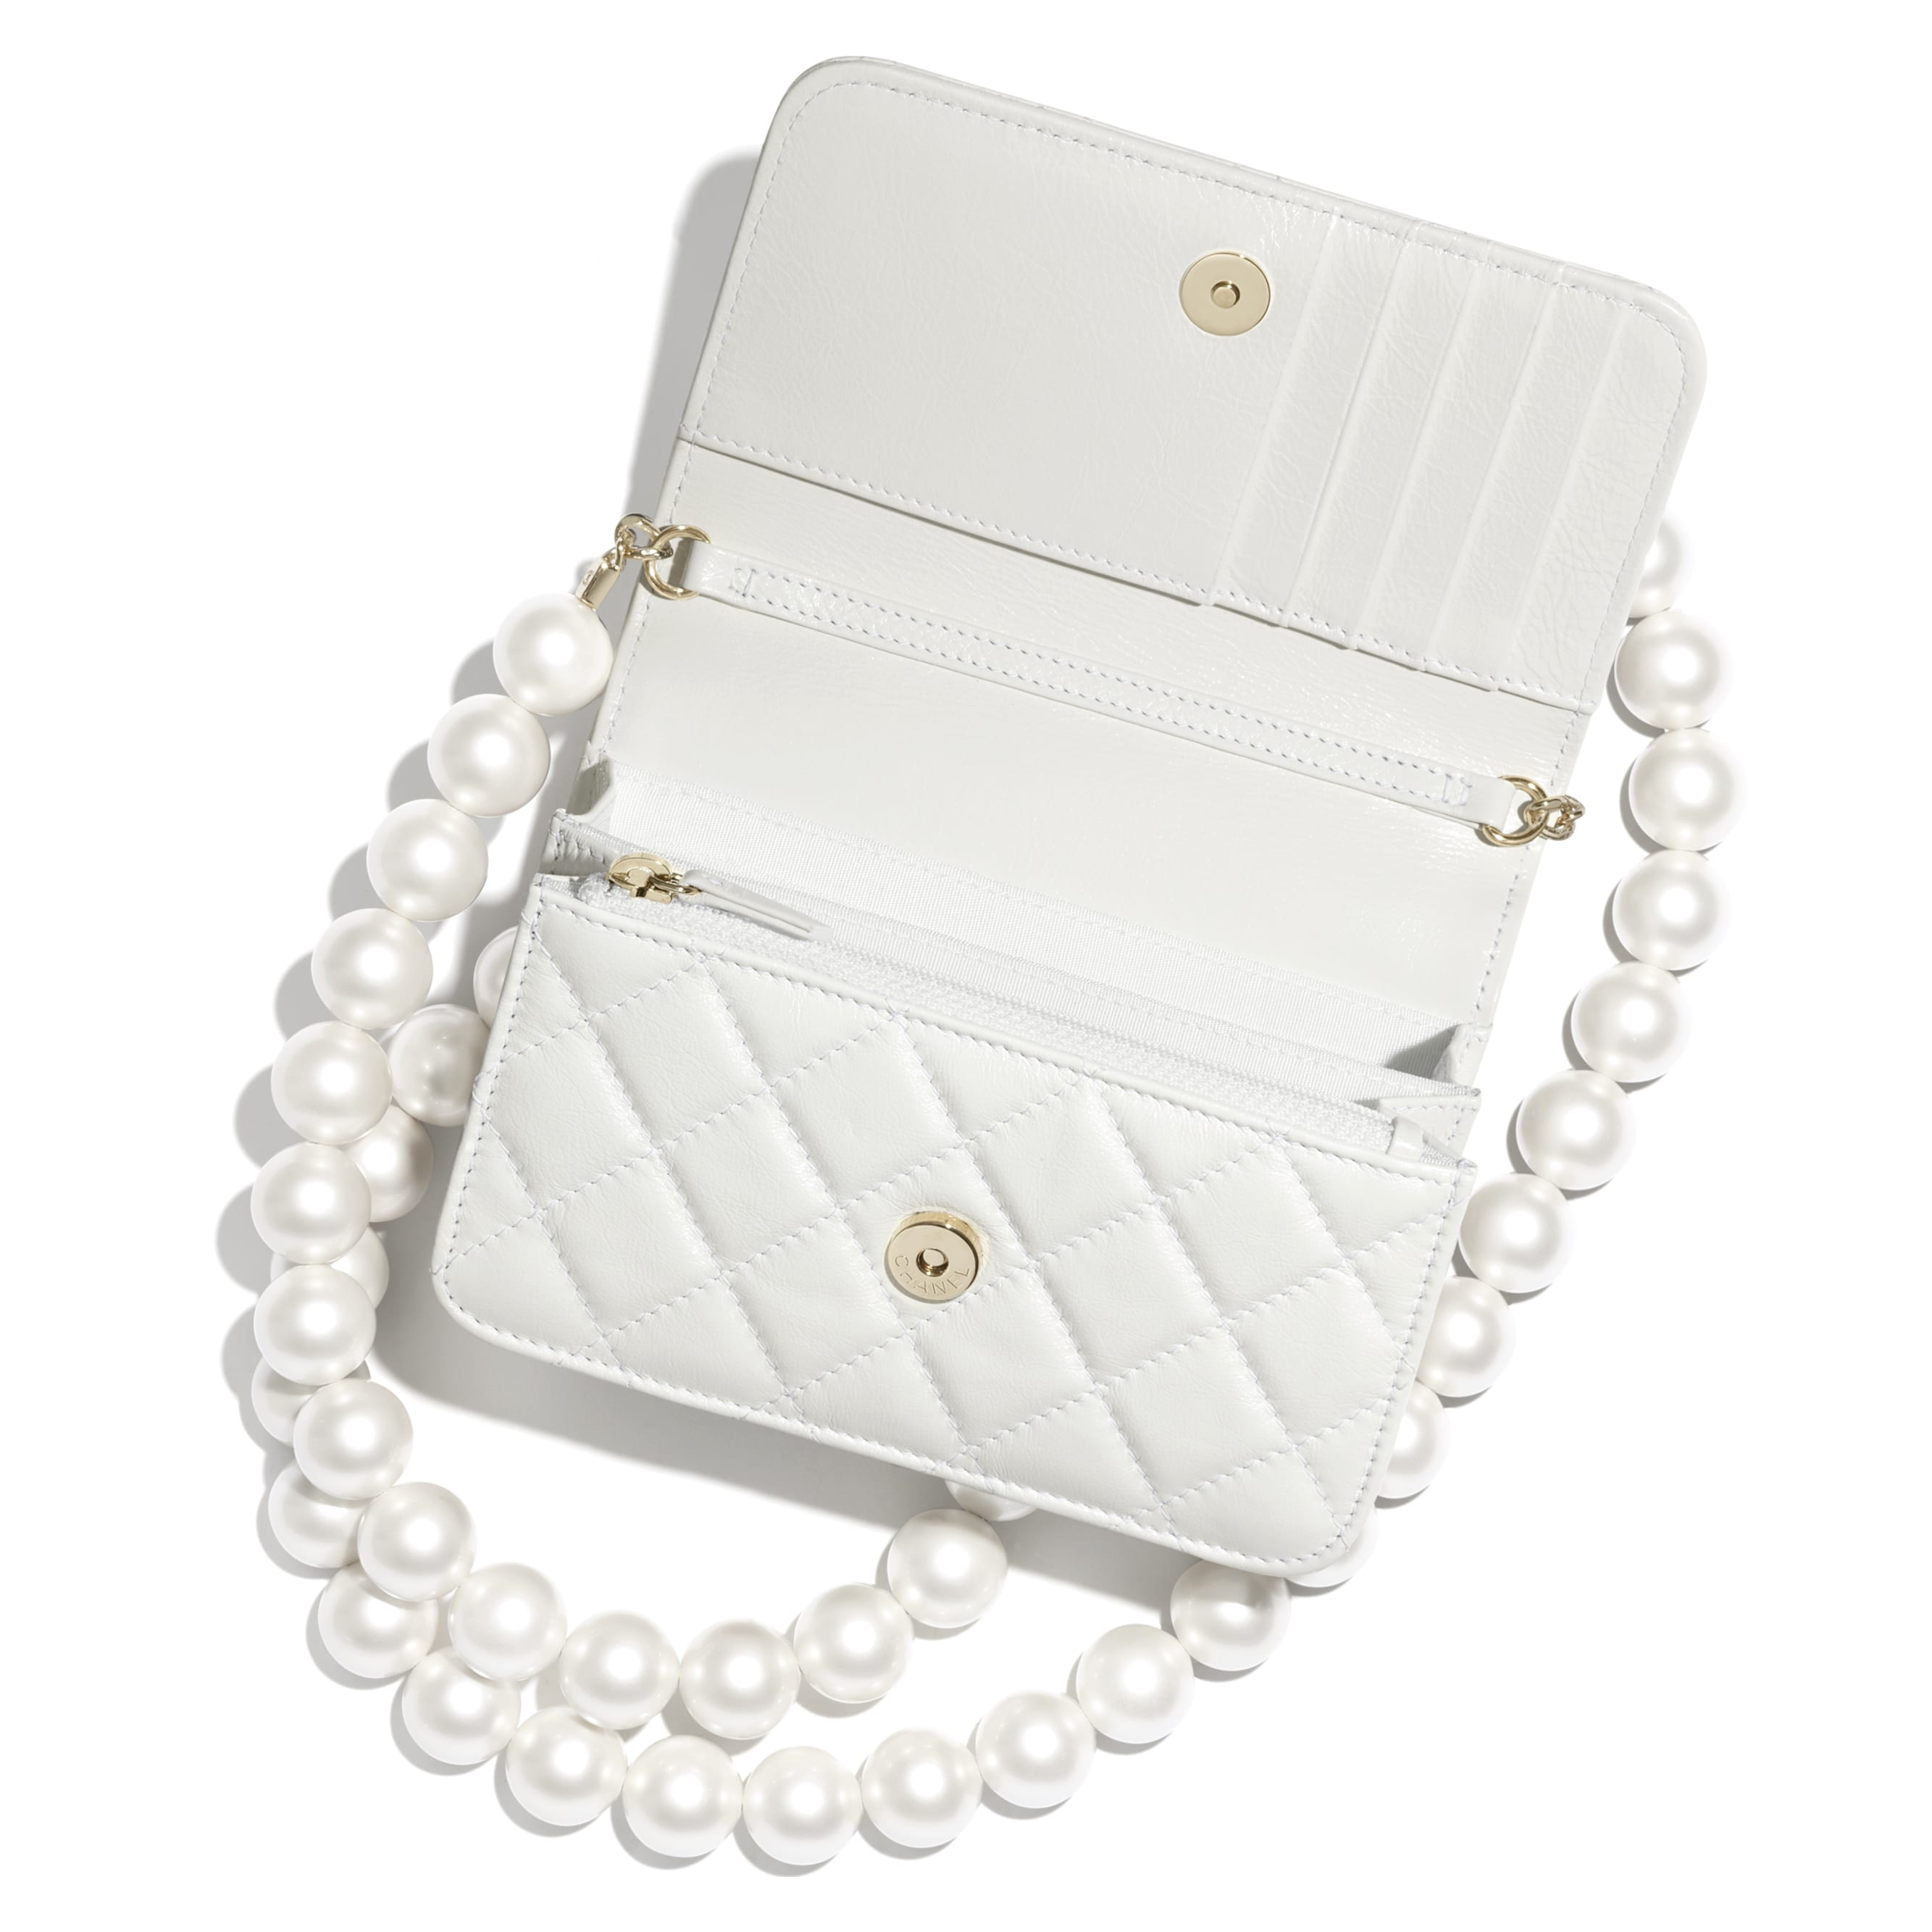 Mini Wallet on Chain - White - Calfskin, Imitation Pearls & Gold-Tone Metal - CHANEL - Alternative view - see standard sized version